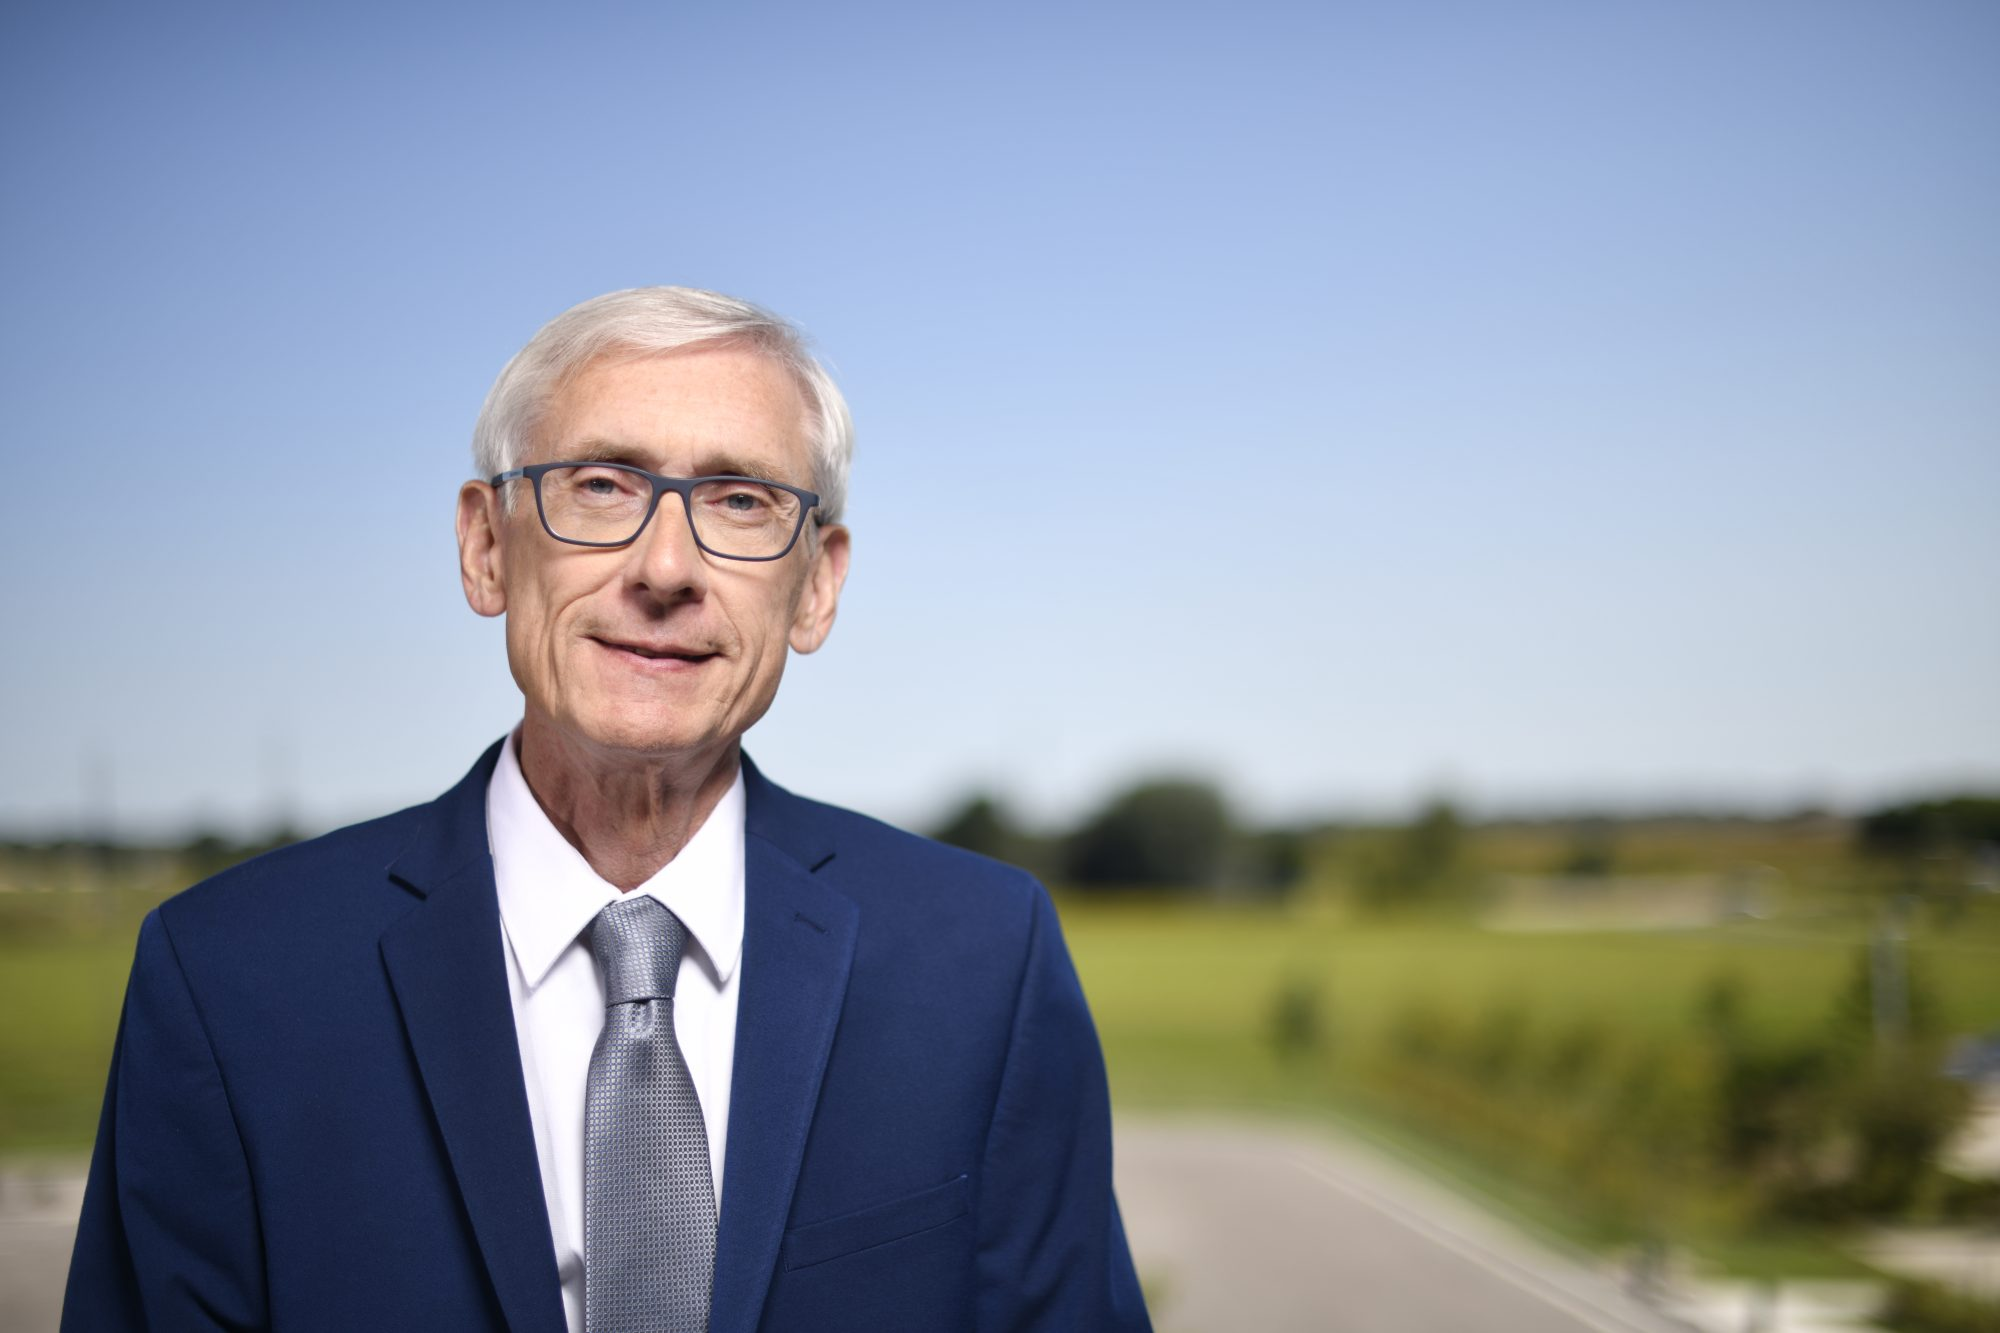 Gov. Evers Announces Search for Next Secretary and CEO of Wisconsin Economic Development Corporation